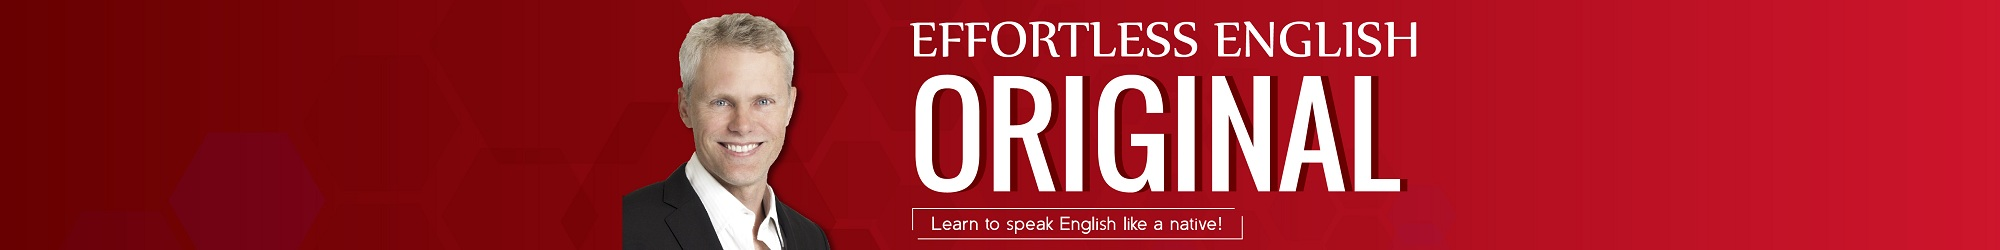 ORIGINAL EFFORTLESS ENGLISH banner